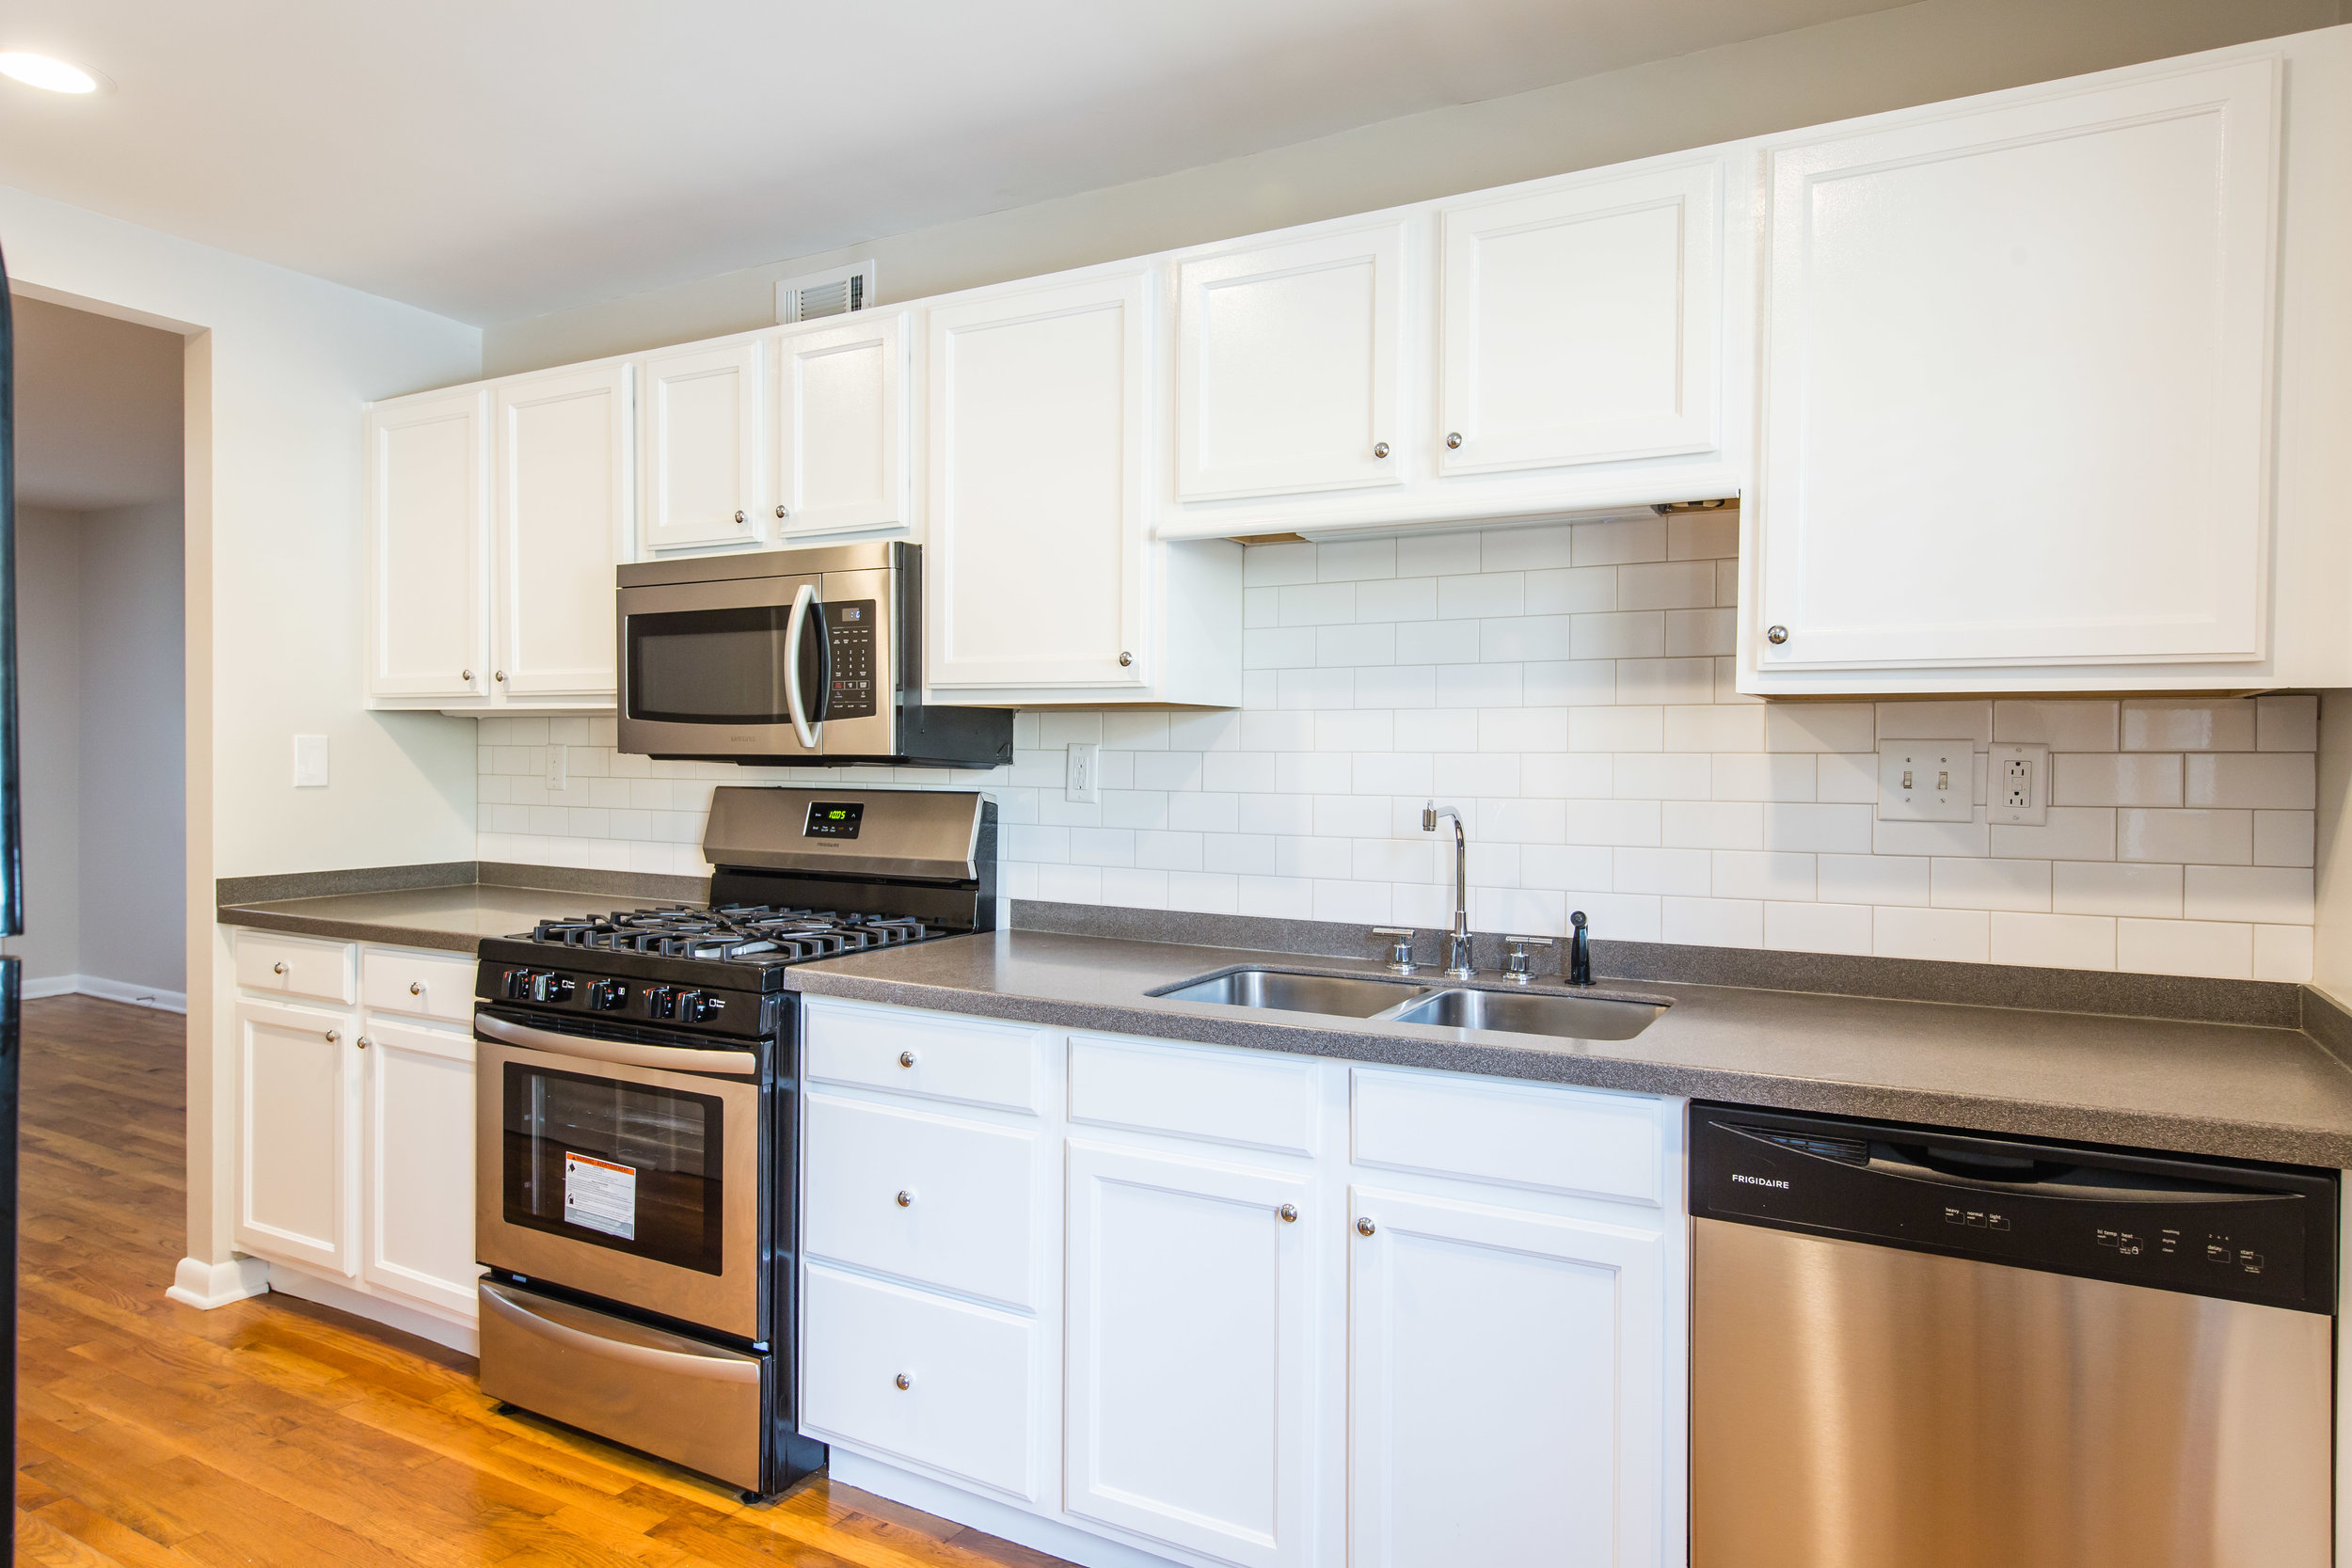 575 Flat Shoals Unit 9-Kitchen 2a.jpg